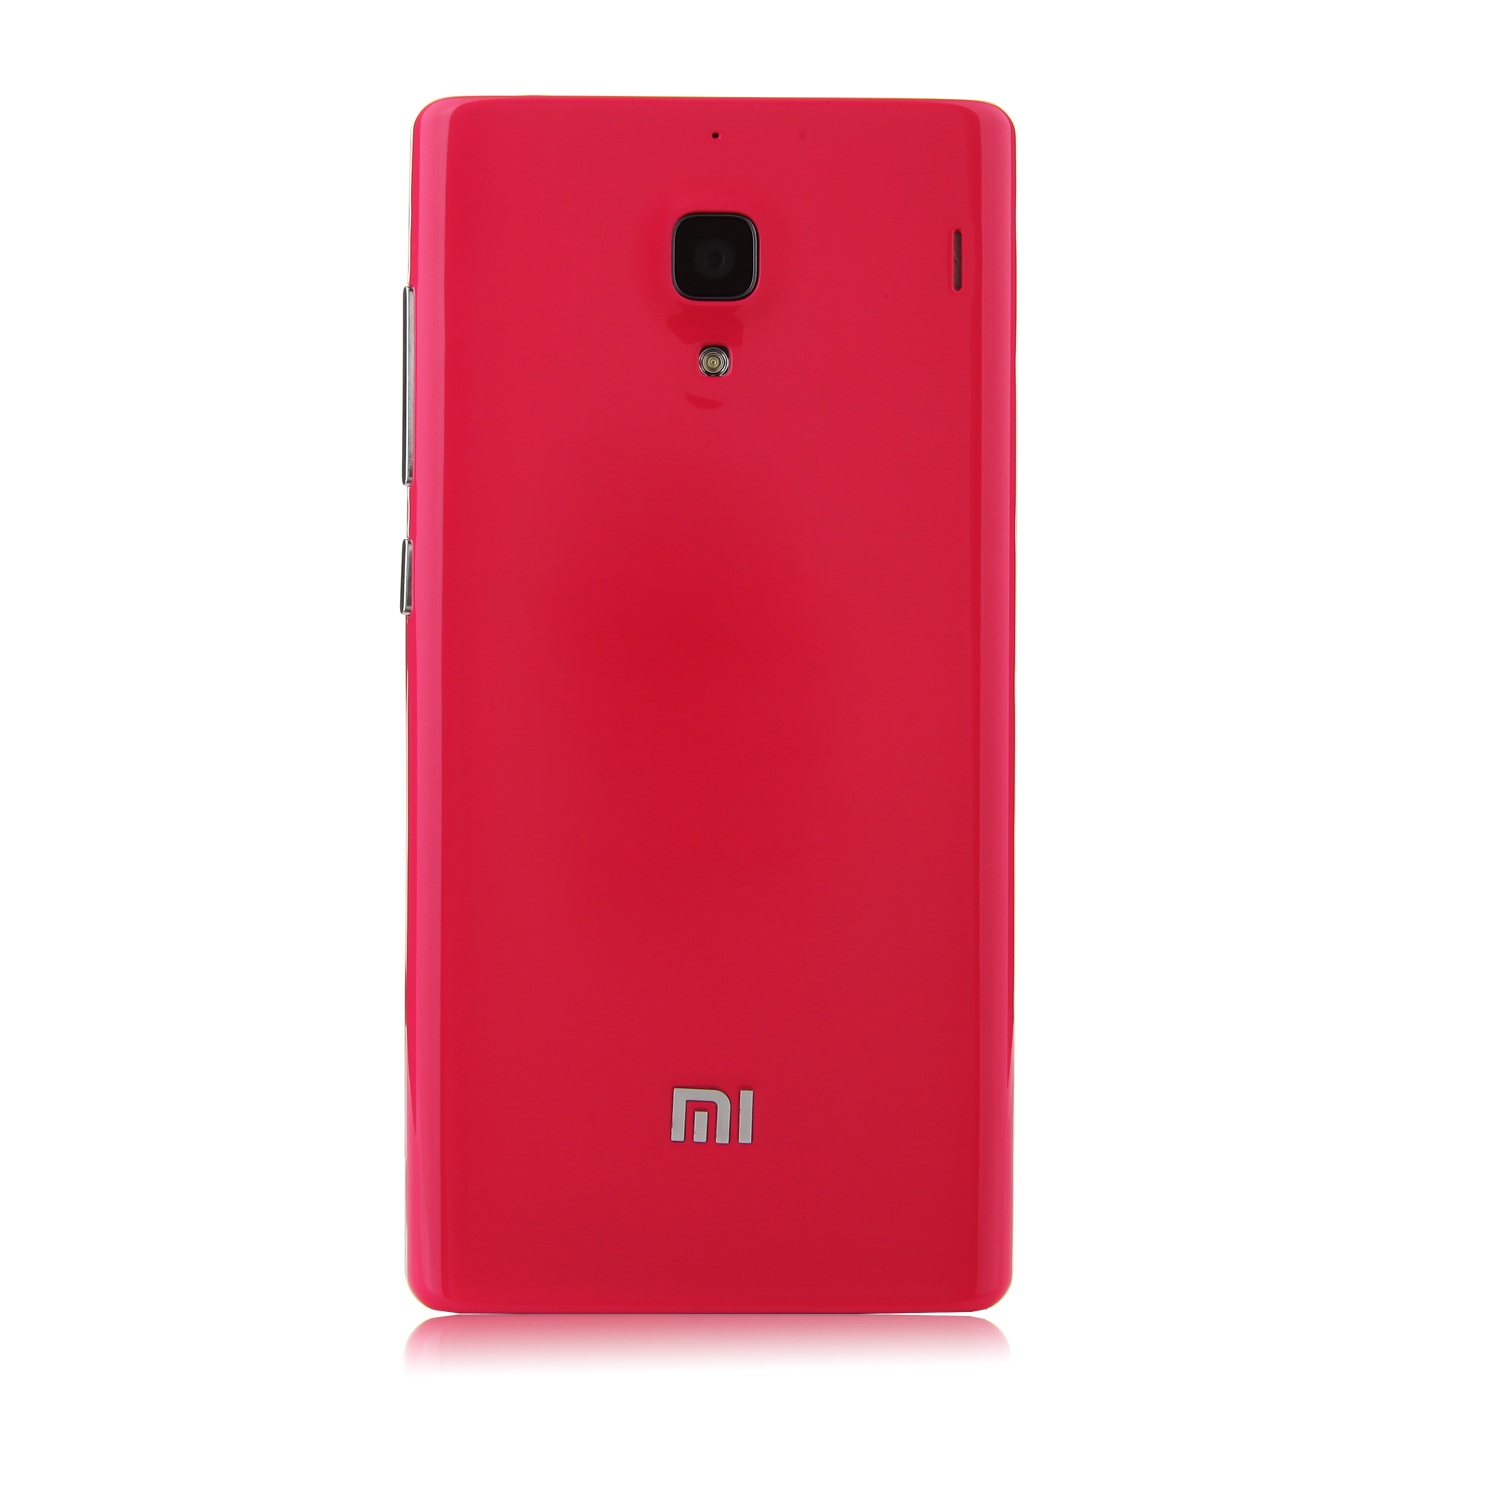 Replacement Battery Cover Back Case for XIAOMI Redmi 1S Smartphone Rose